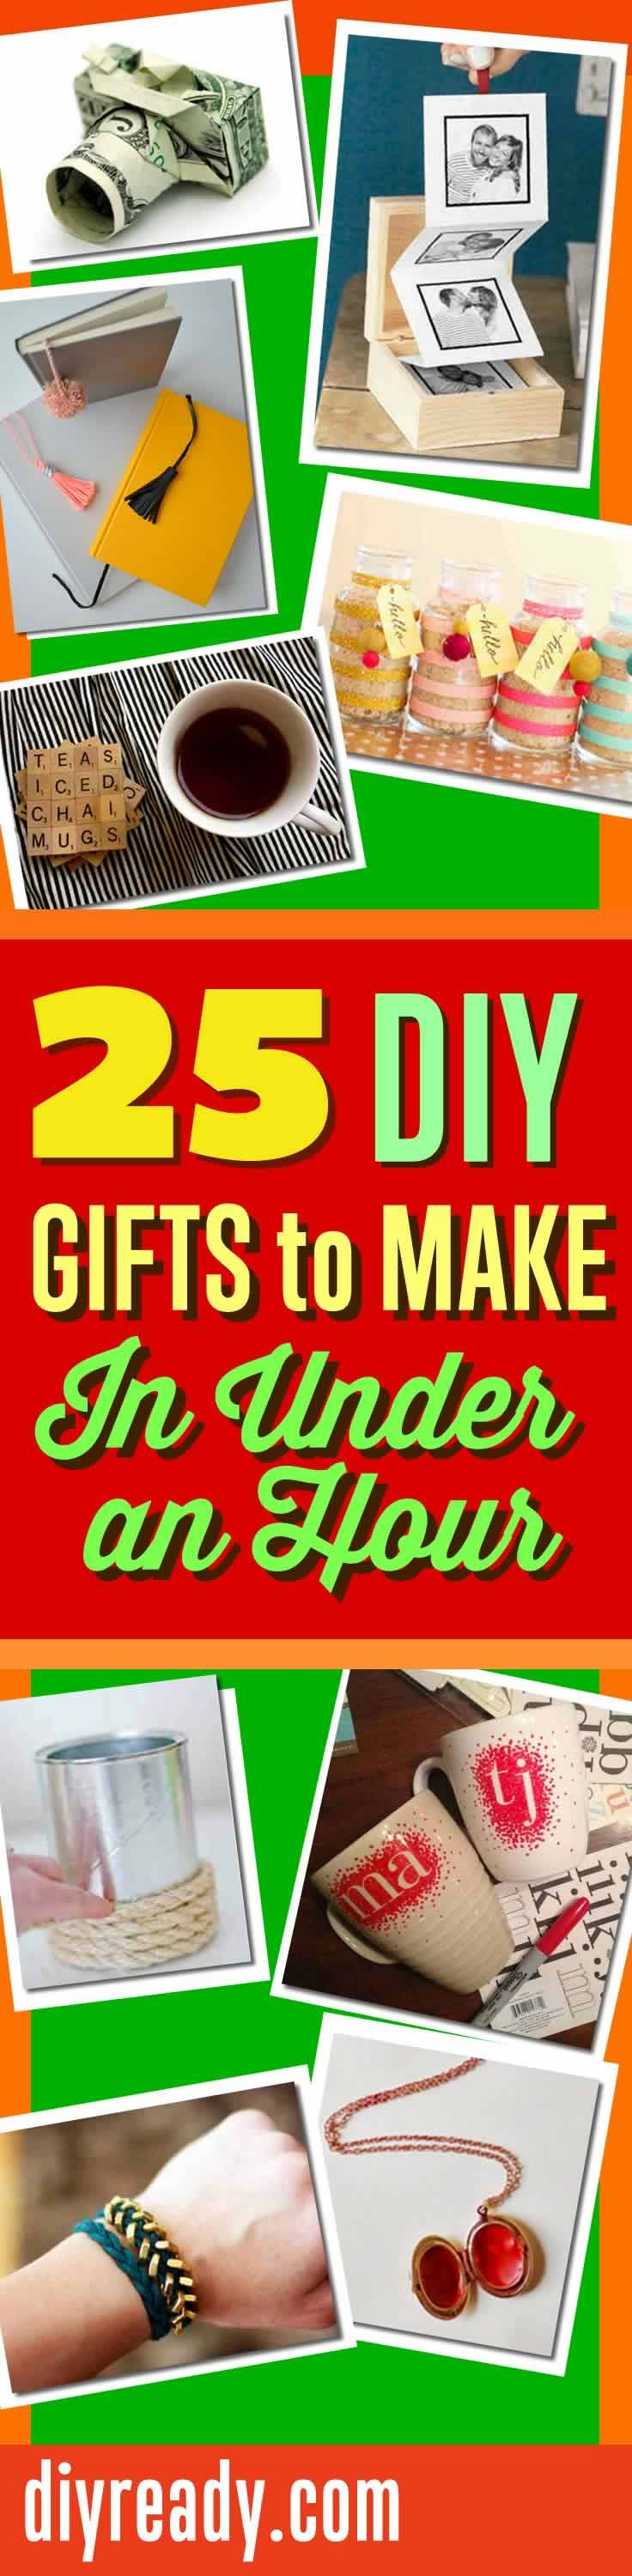 QUICK DIY Gifts You Can Make In Under An Hour! Quick DIY Projects and Do It Yourself Ideas for Easy Gift Tips http://diyready.com/25-diy-gifts-you-can-make-in-under-an-hour-homemade-christmas-gift-ideas/